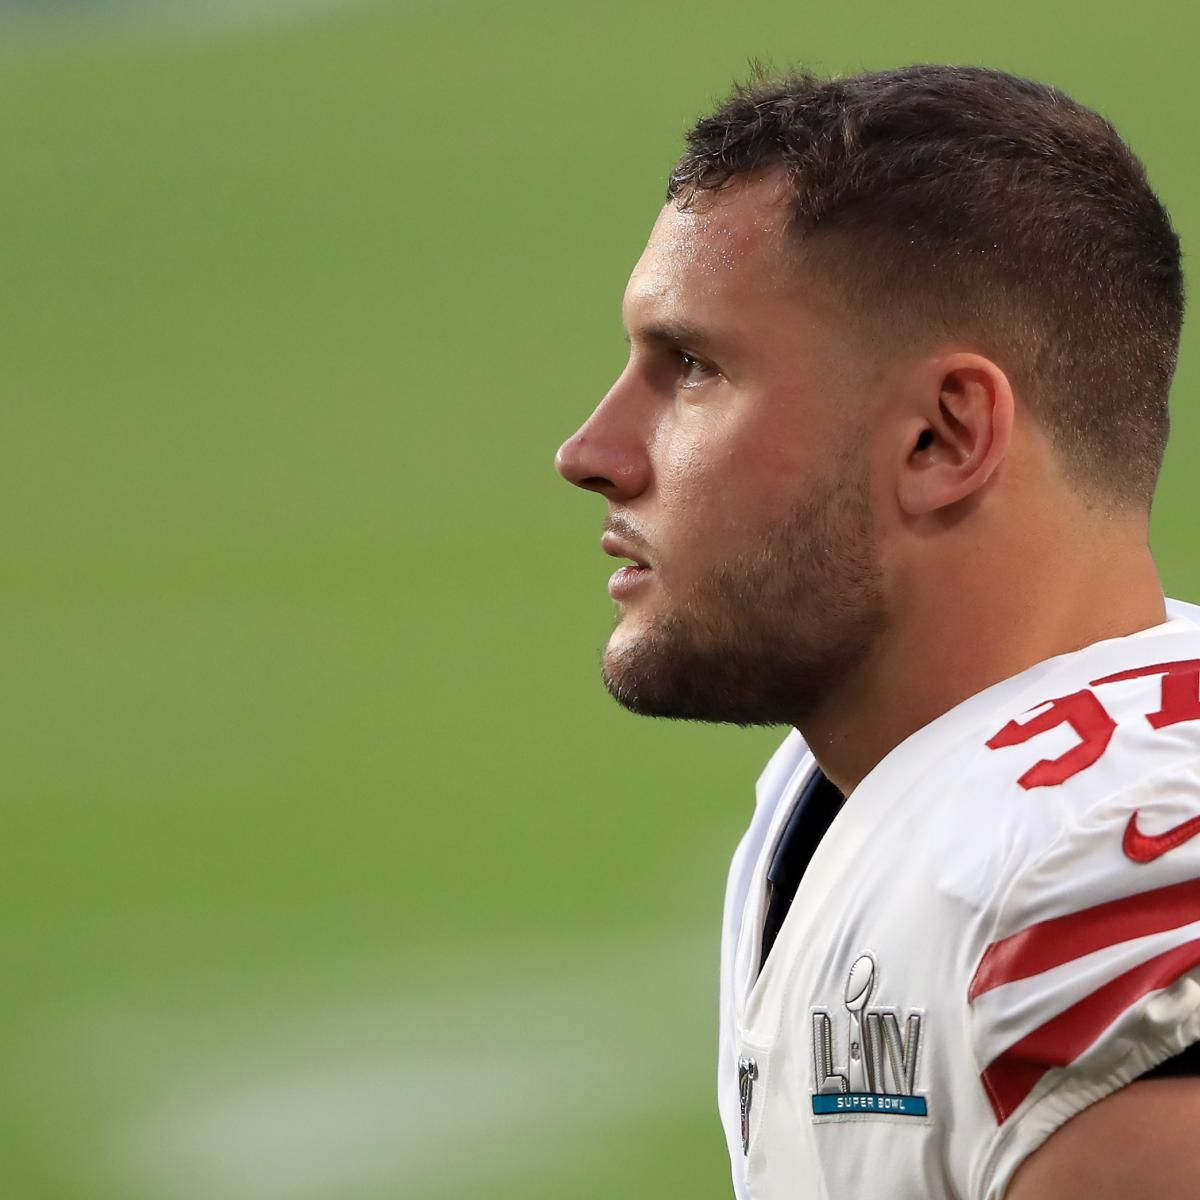 Nick Bosa S 49ers Might Be Crying Now But Don T Expect Them To Stay Down Long In 2020 Beautiful Men Faces 49ers Players 49ers